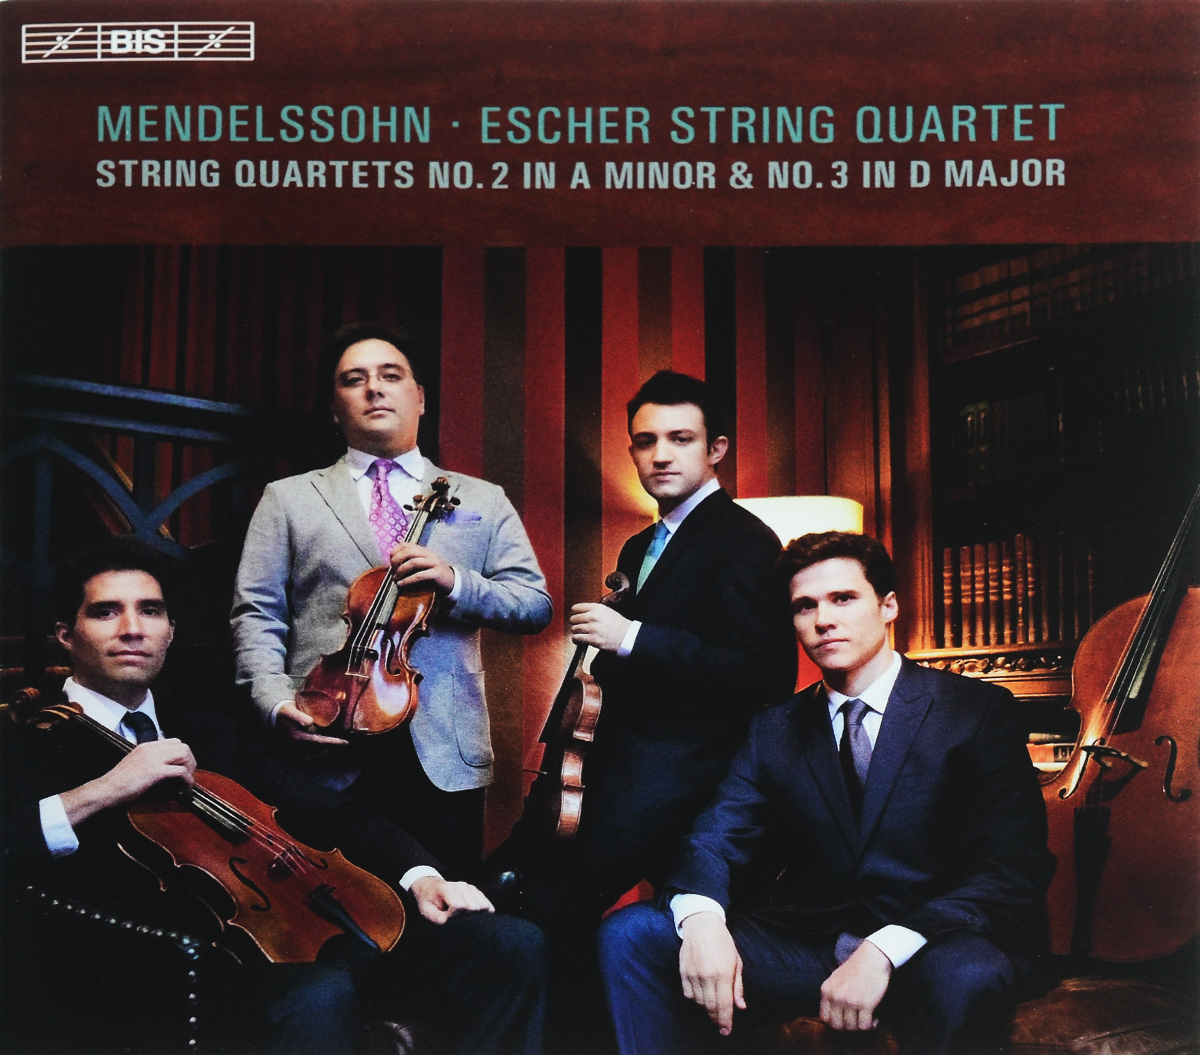 Escher String Quartet Escher String Quartet. Mendelssohn. String Quartets Nos 2 & 3 (SACD) emerson string quartet complete string quartets mendelssohn emerson string quartet 4 cd